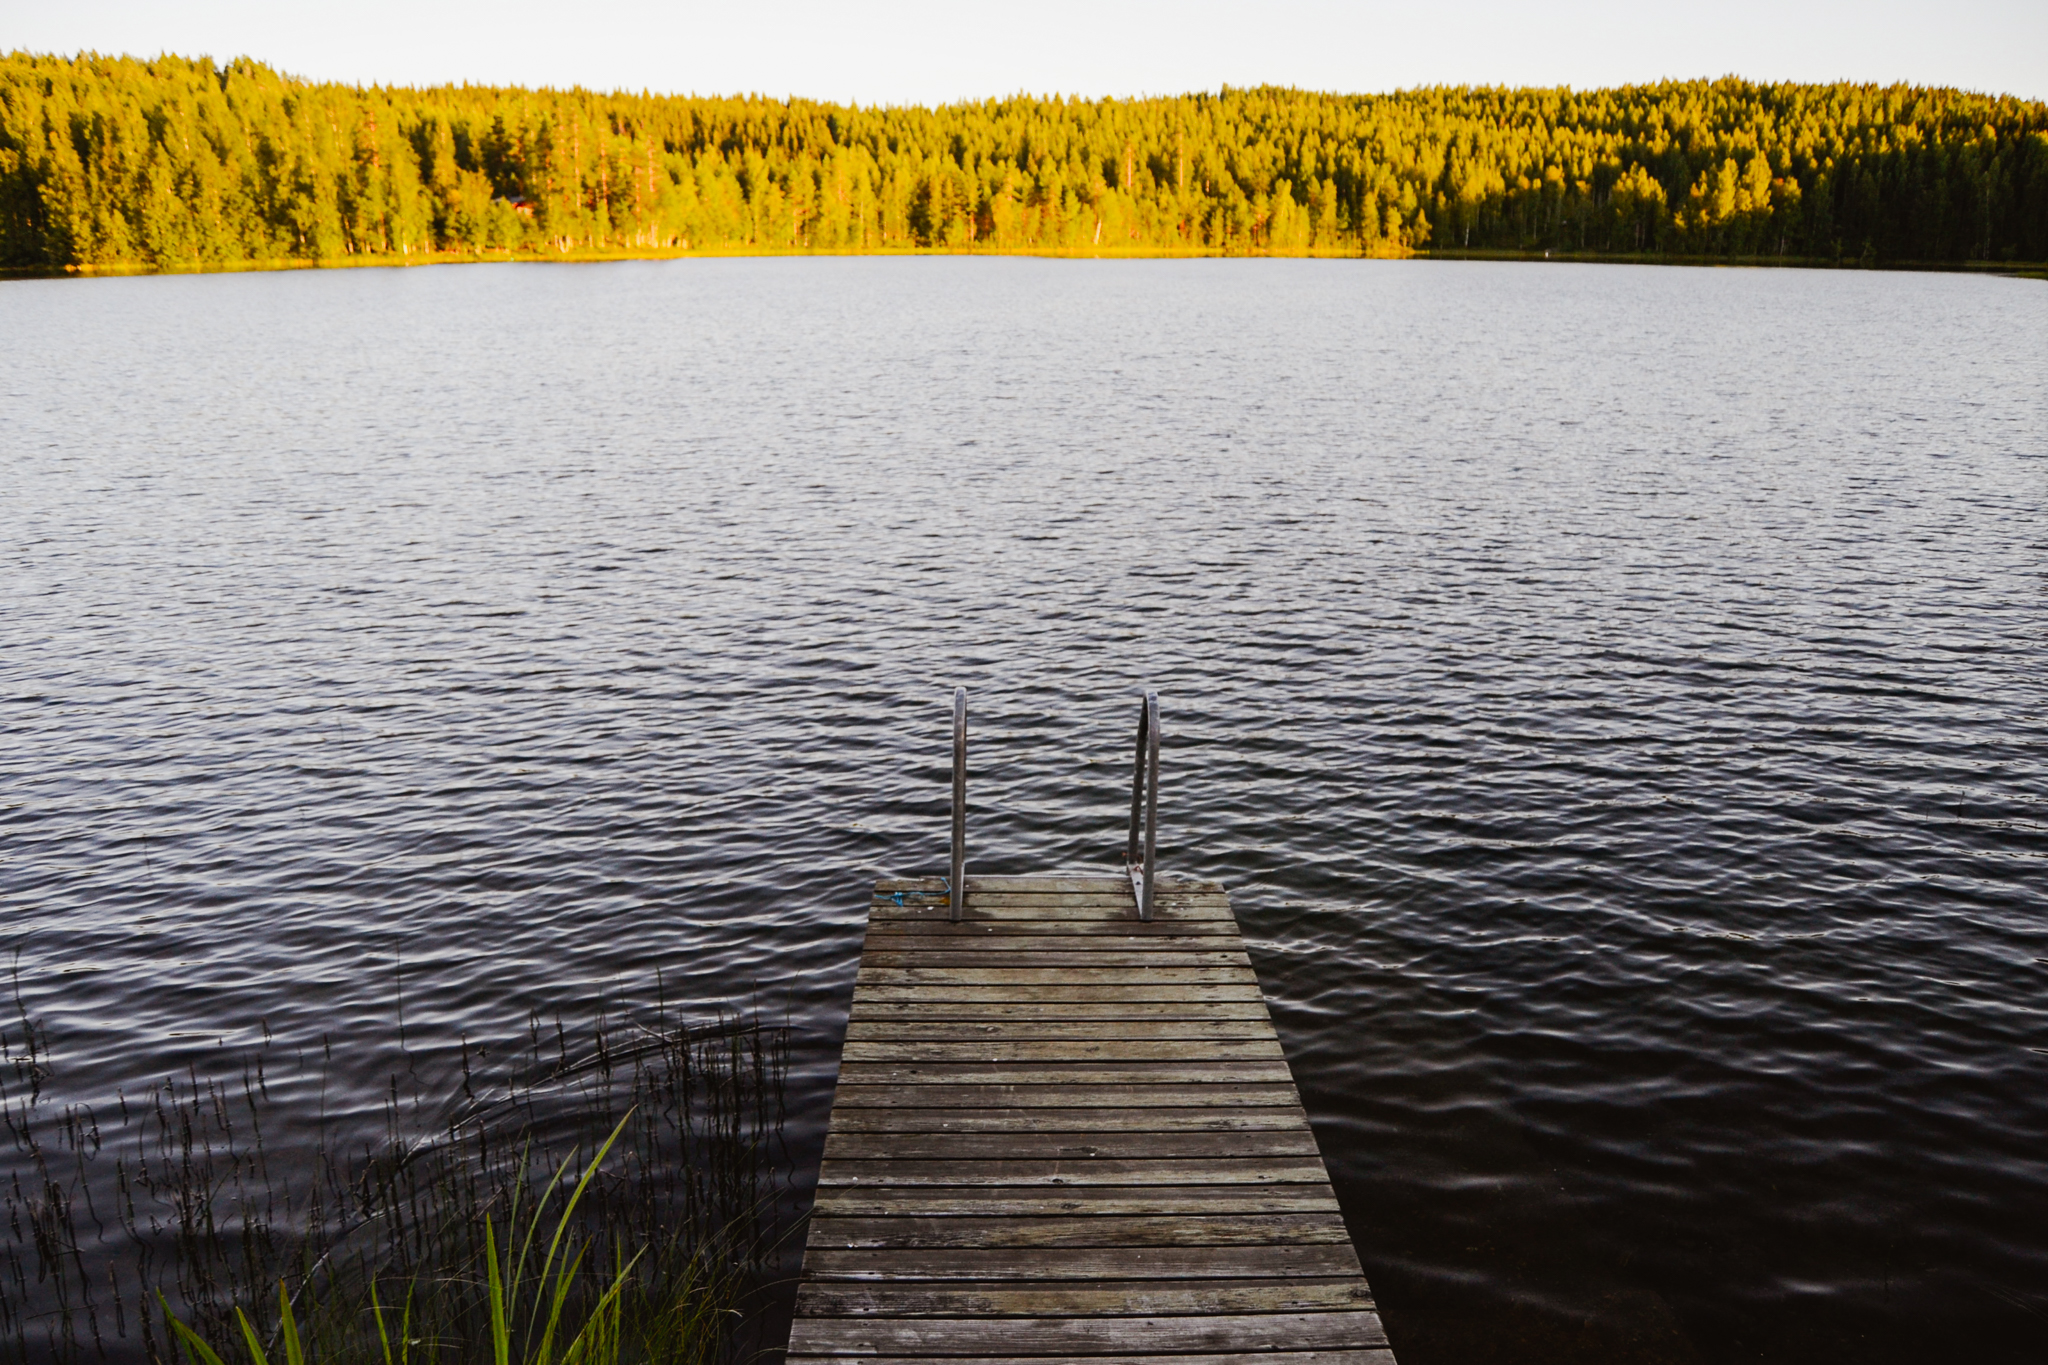 dock by the Finnish lake on calm summer evening